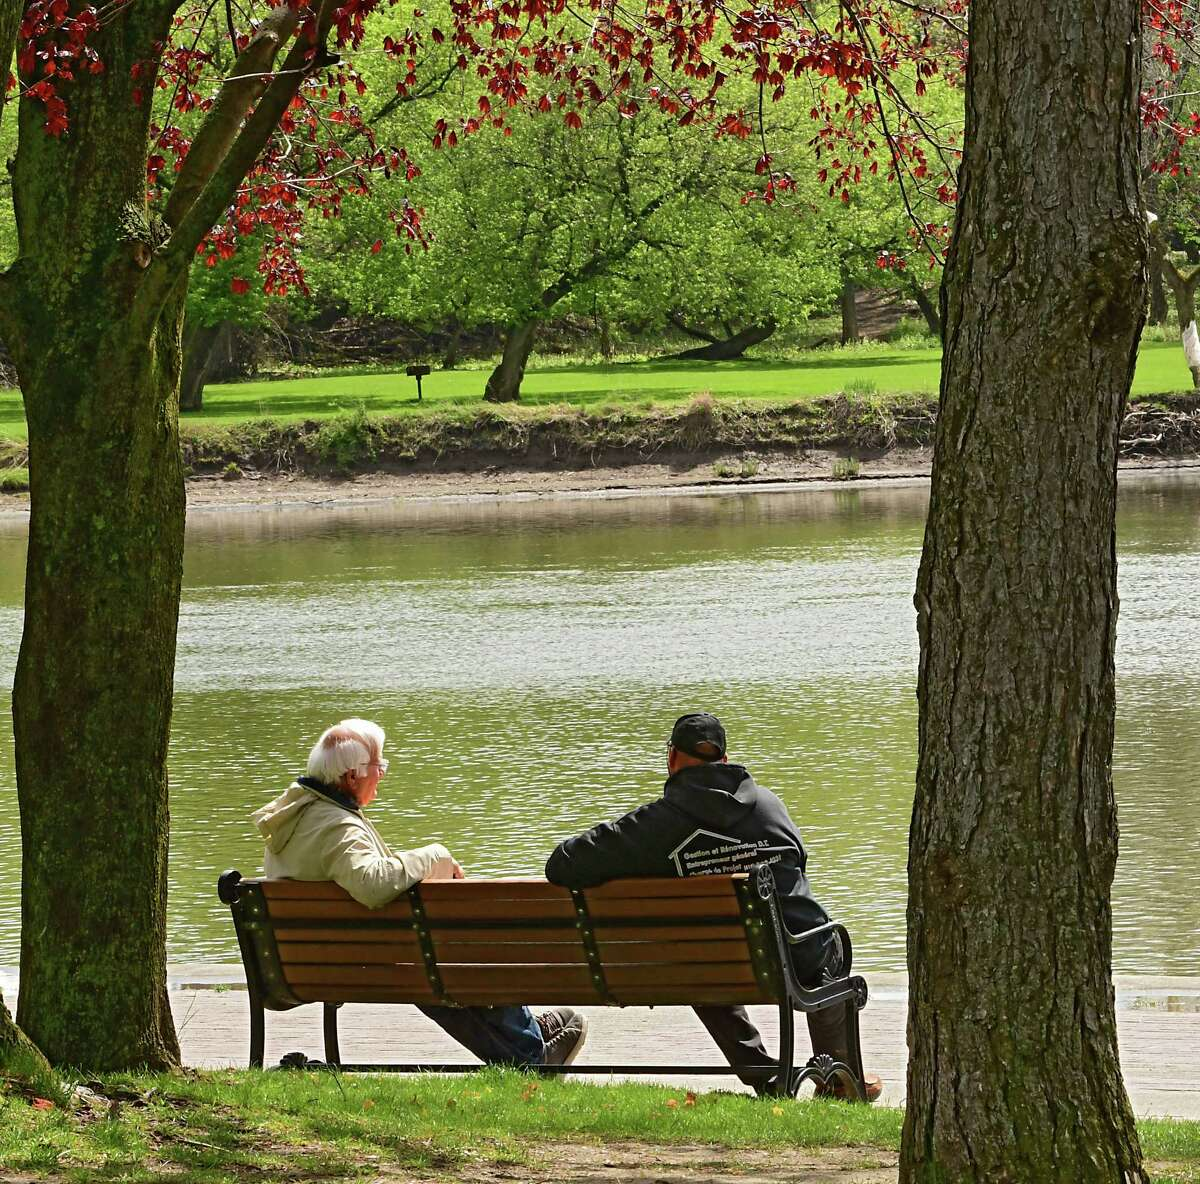 Warm weather is on the way, you'll just have to sit tight for a few more days to get it if you live in the Capital Region, Times Union meteorologist Jason Gough says. In this photograph, two men sit on a park bench overlooking the Mohawk River near the Waterford Visitors Center on Monday, May 11, 2020 in Waterford, N.Y. (Lori Van Buren/Times Union)